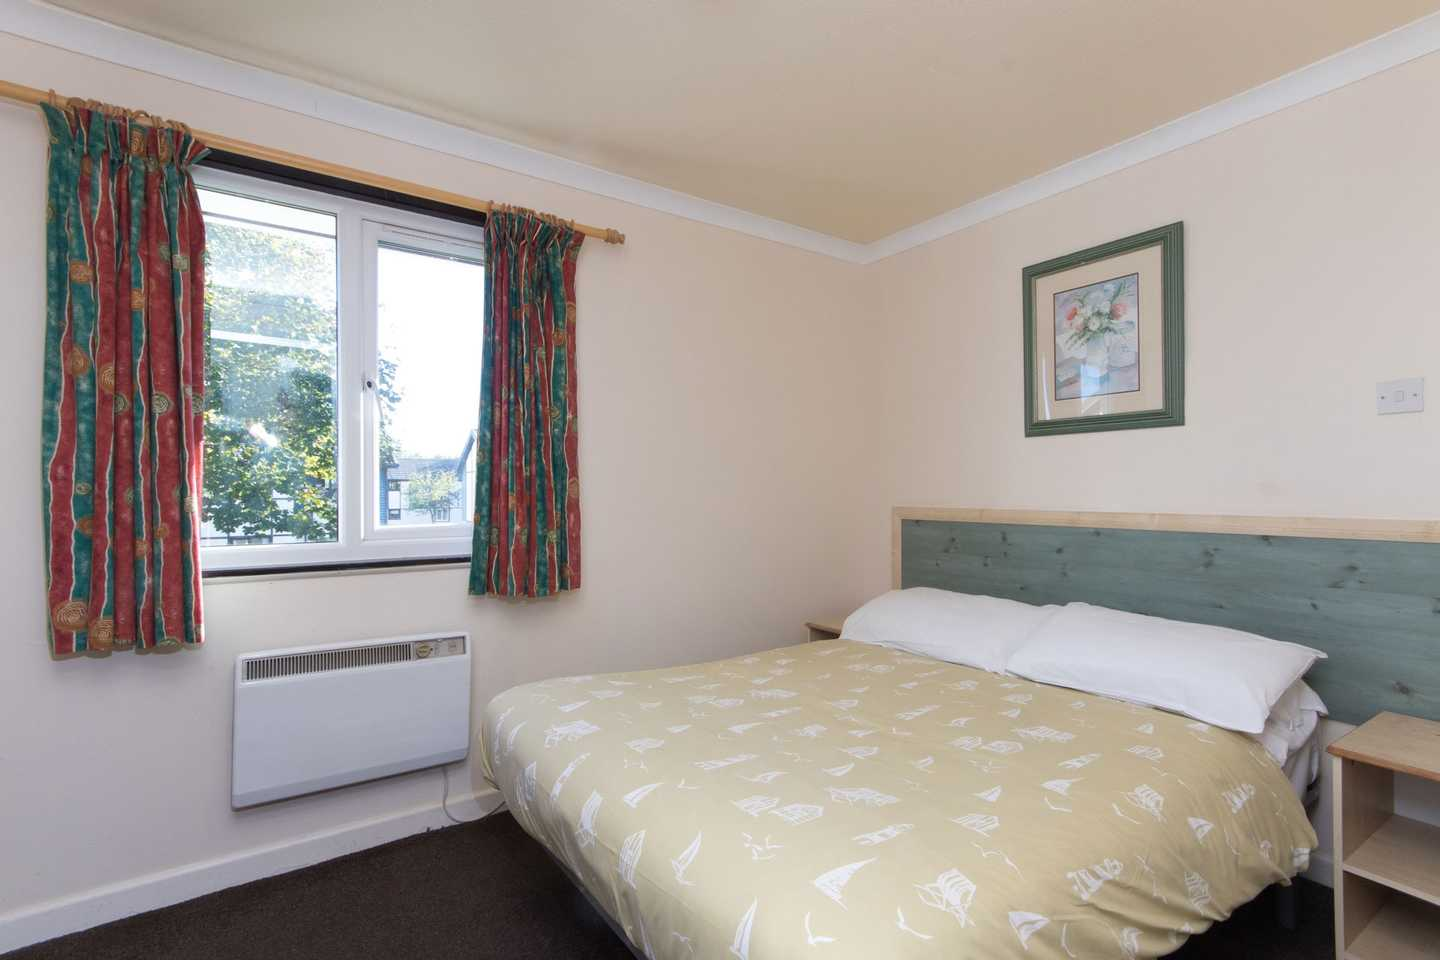 A Comfort apartment master bedroom with double bed, two bedside tables with lamps and a radiator